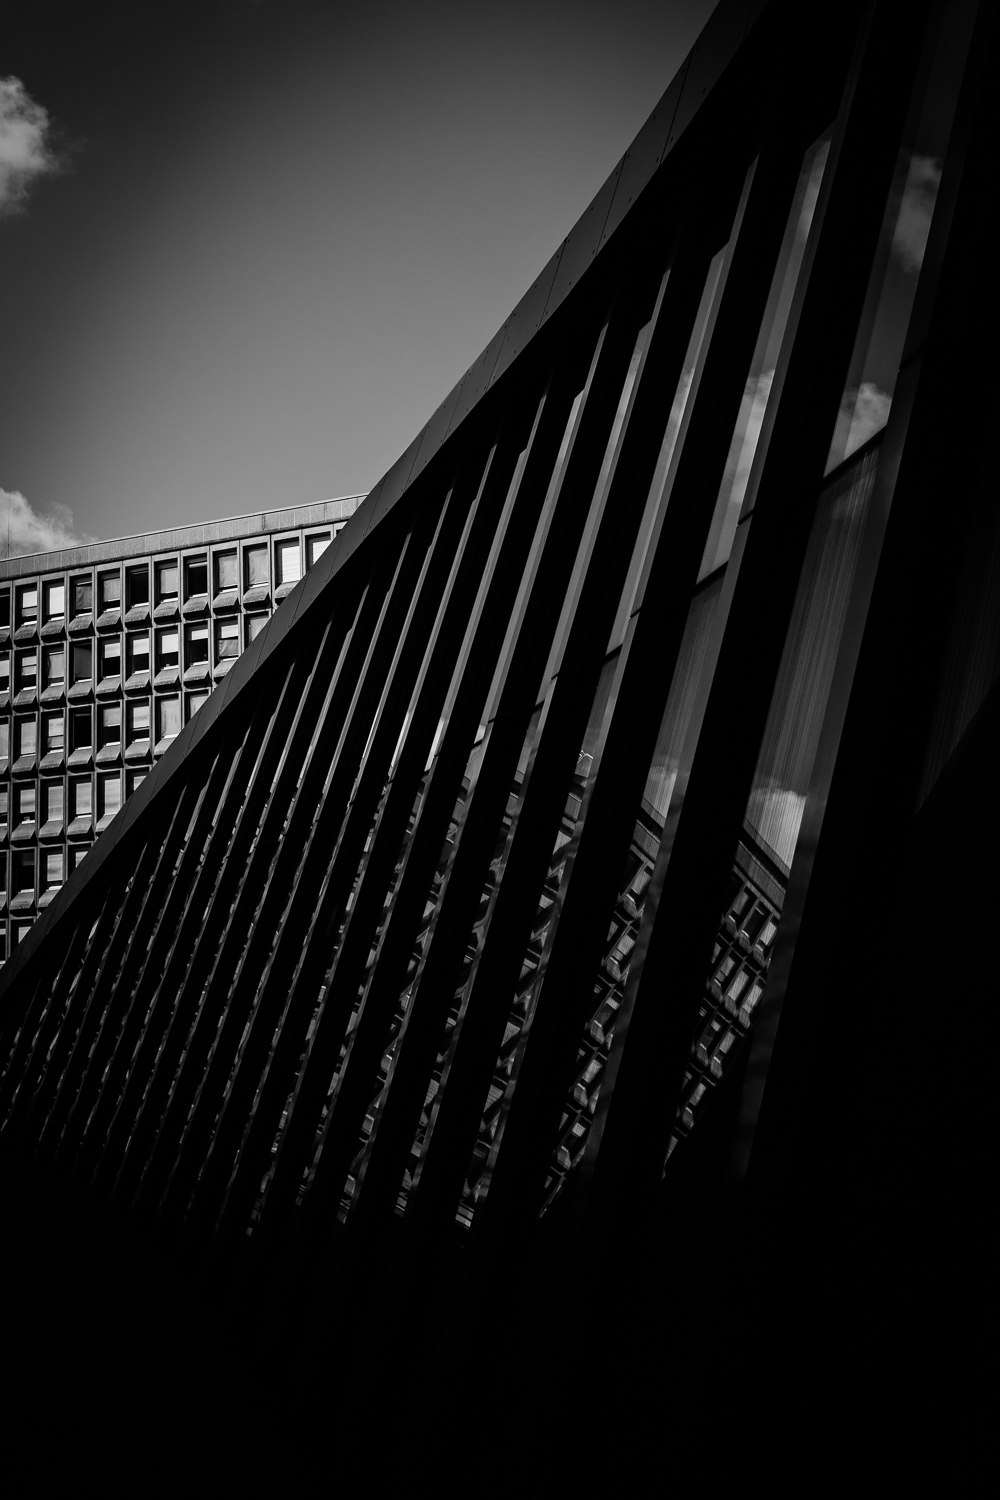 20140819 - Location Scouting-45.jpg